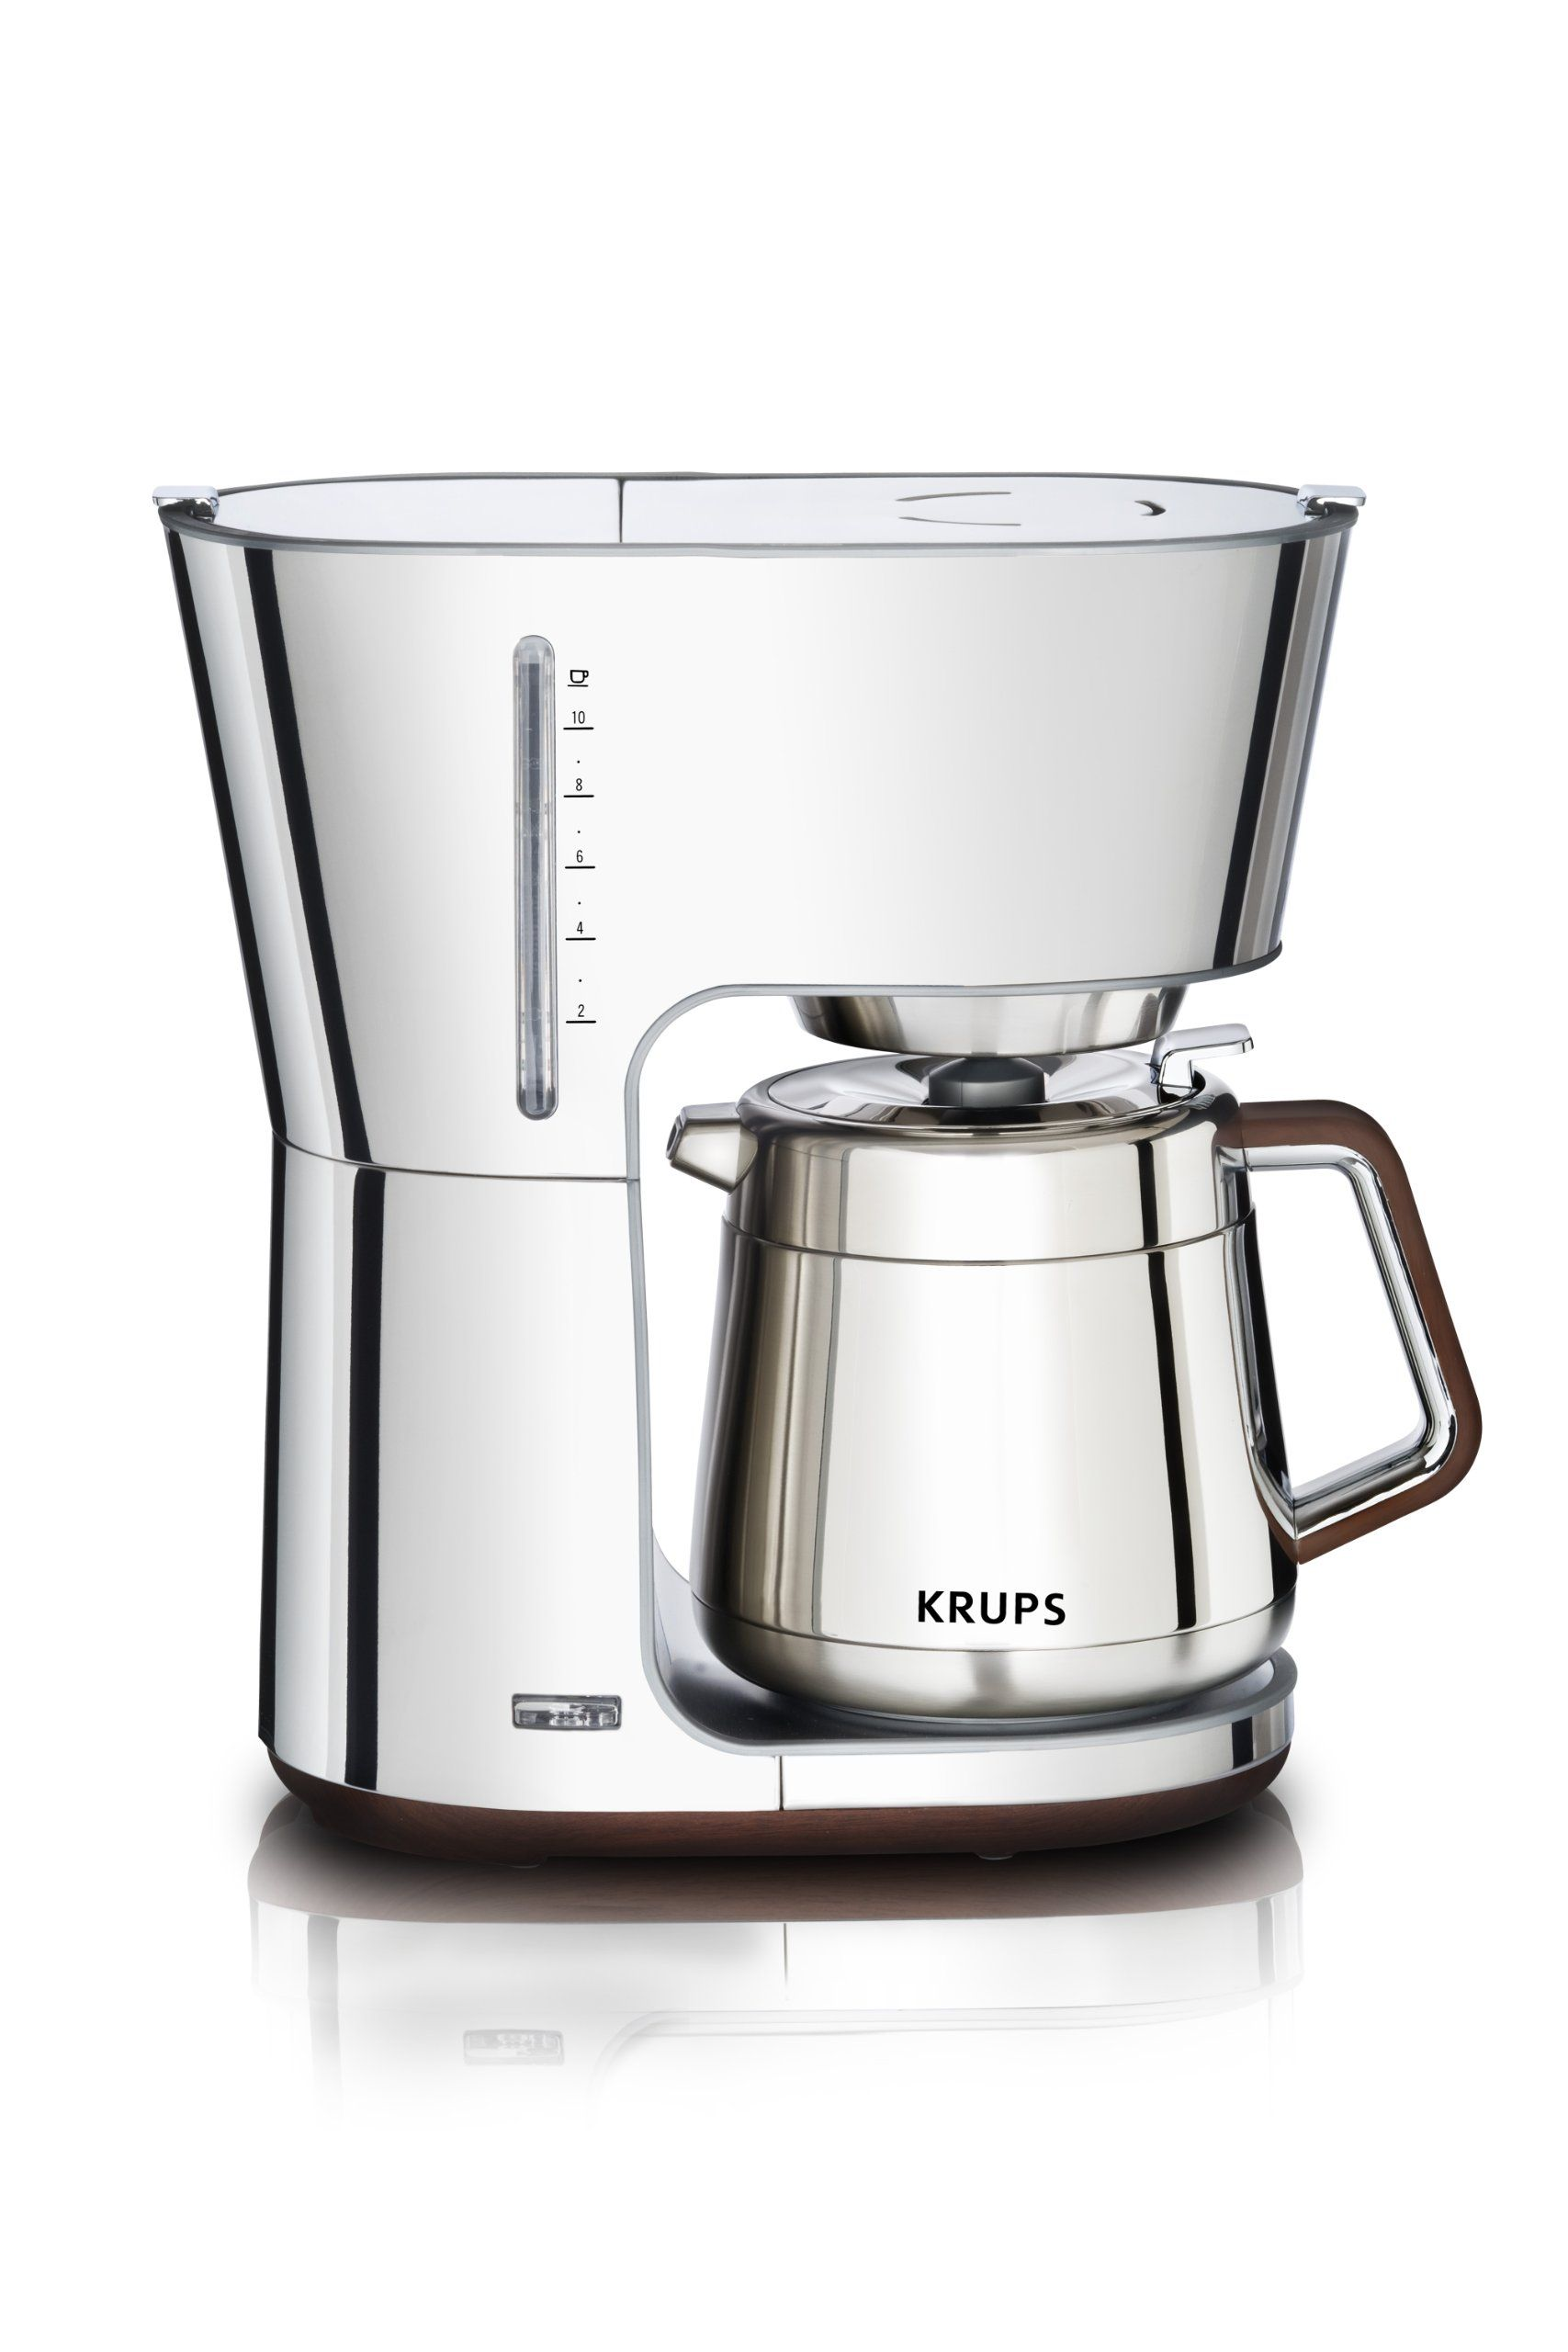 krups kt600 silver art collection thermal carafe coffee maker with chrome stainless steel on kitchen decor pitchers carafes id=71765